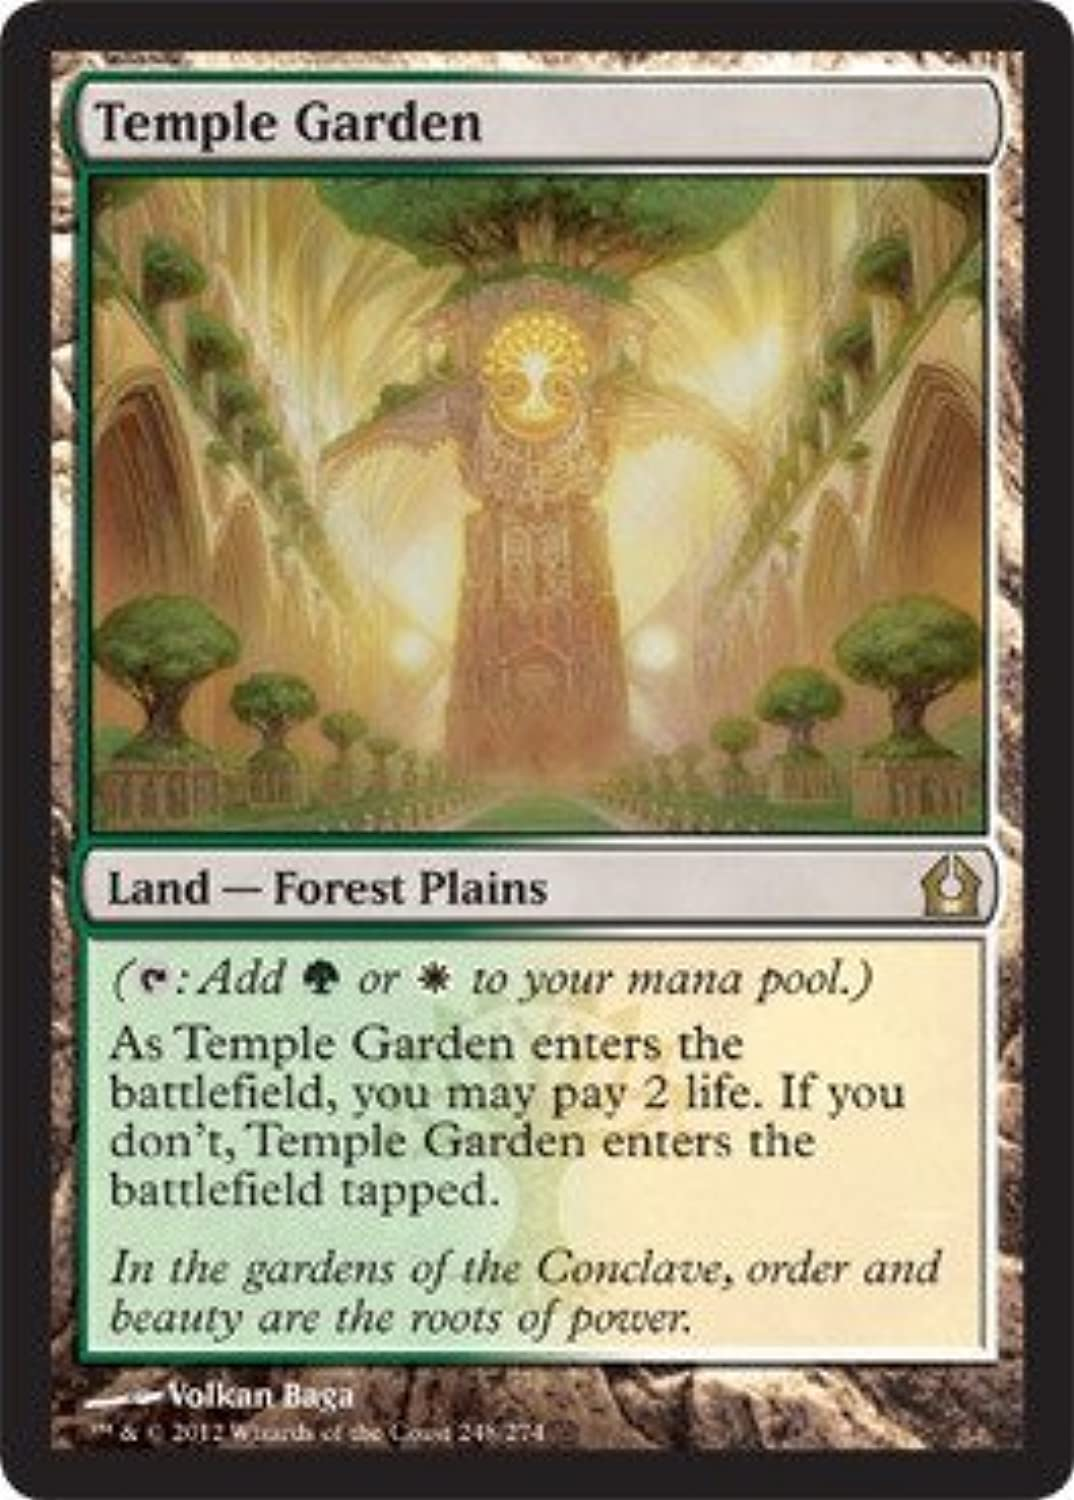 oferta especial Magic  the Gathering - Temple Garden Garden Garden (248) - Return to Ravnica - Foil by Magic  the Gathering  alto descuento